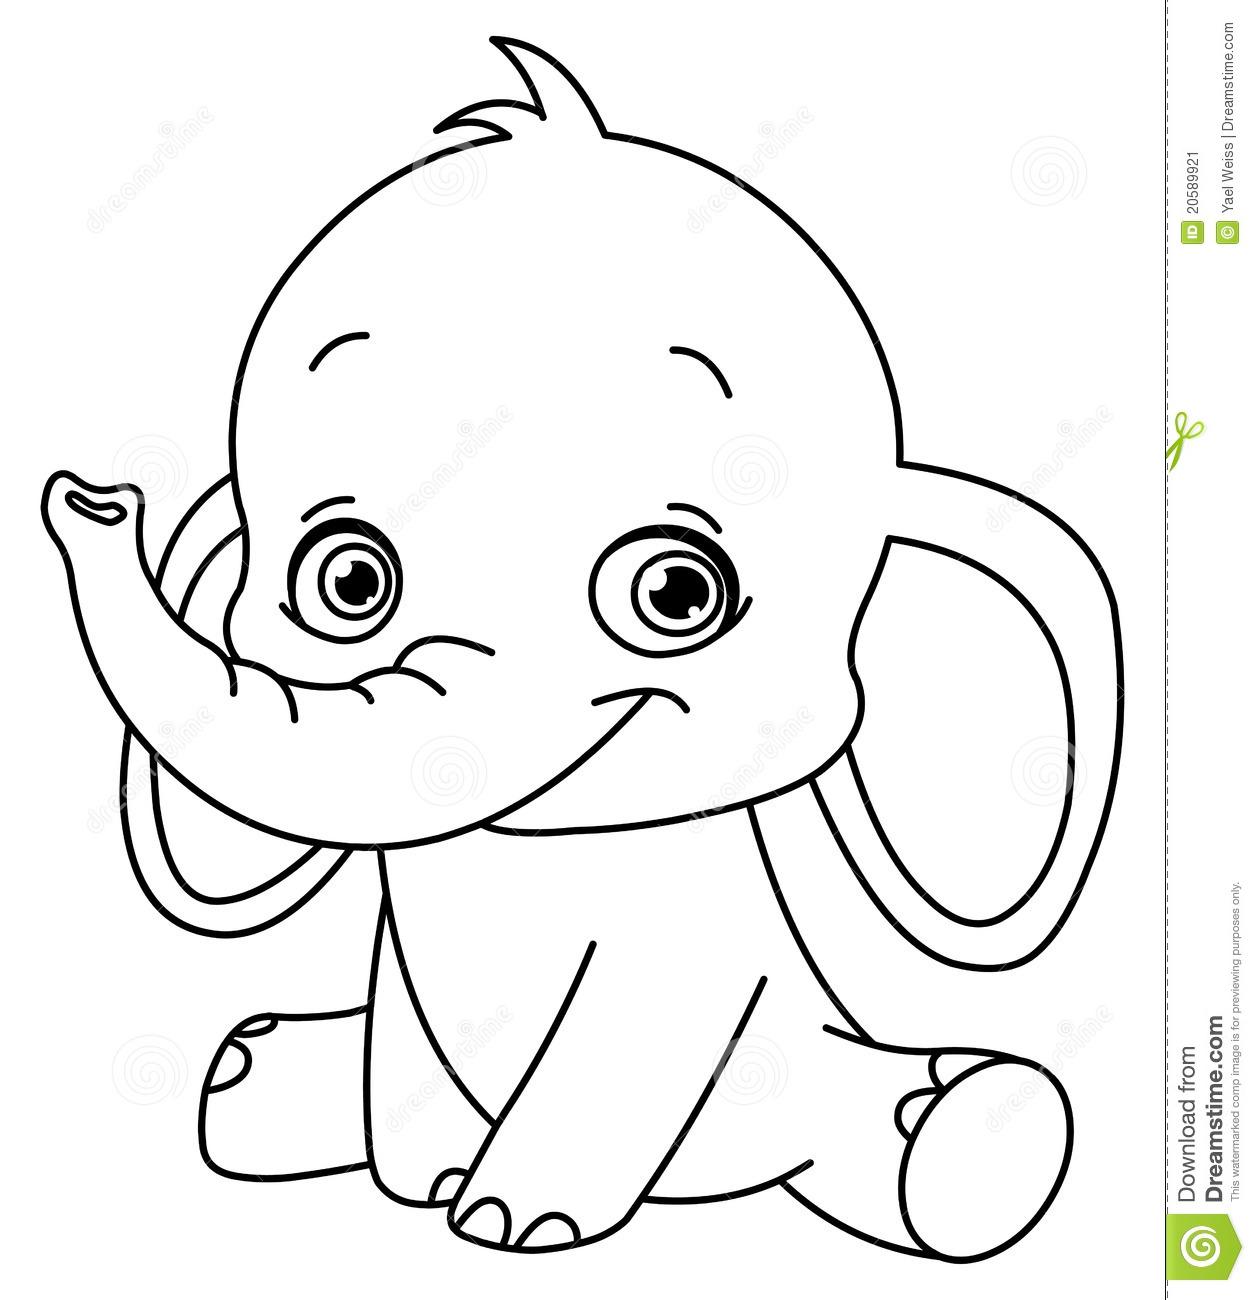 baby-elephant coloring pages,printable,coloring pages